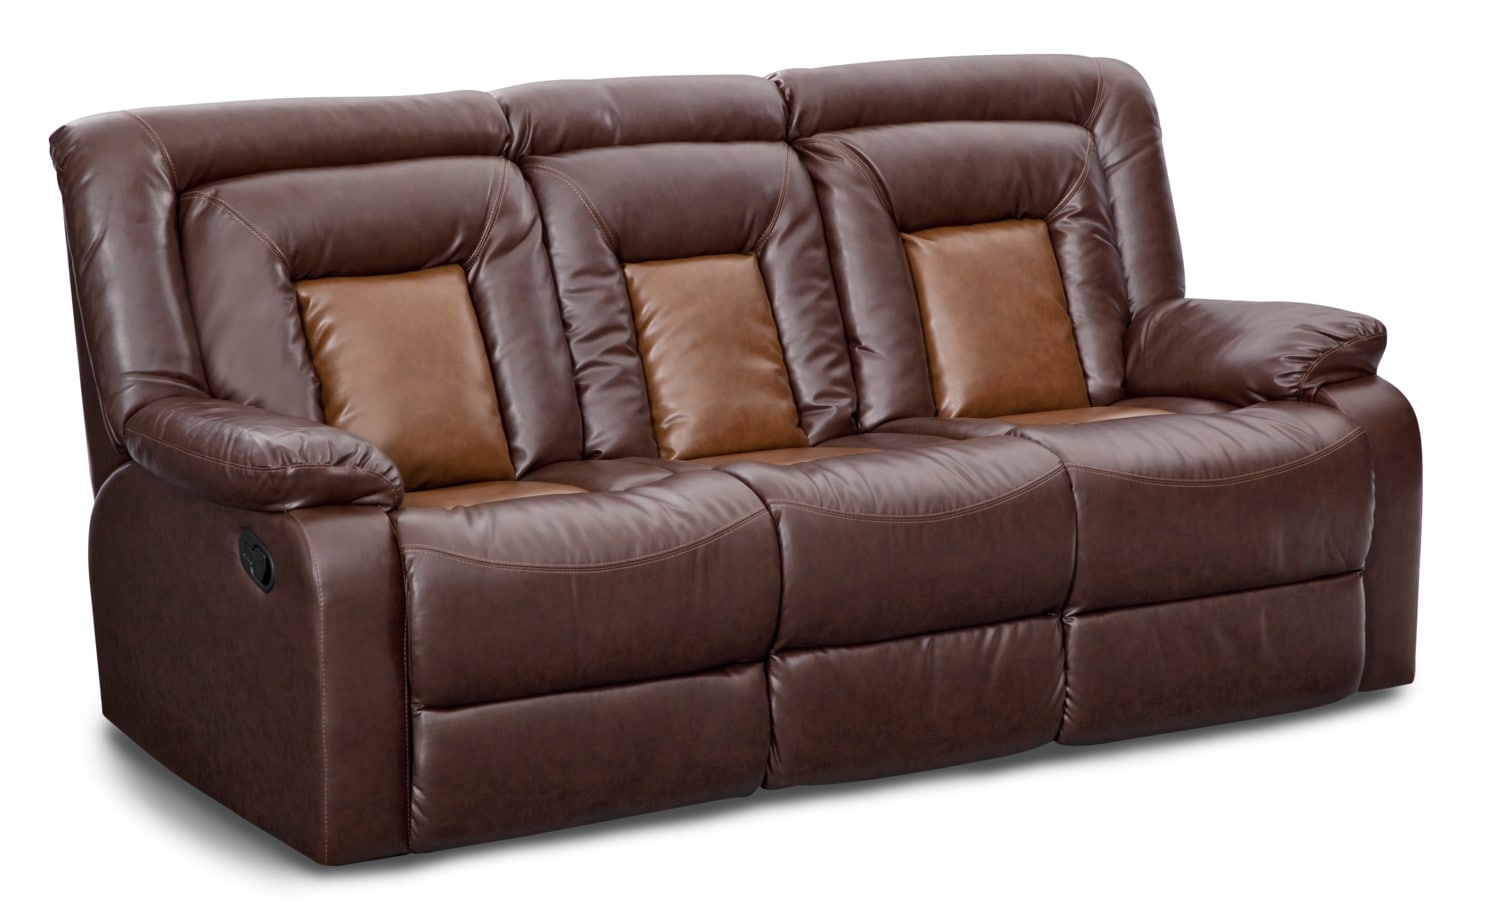 Mustang dual reclining sofa dual reclining loveseat and for Couch und sofa